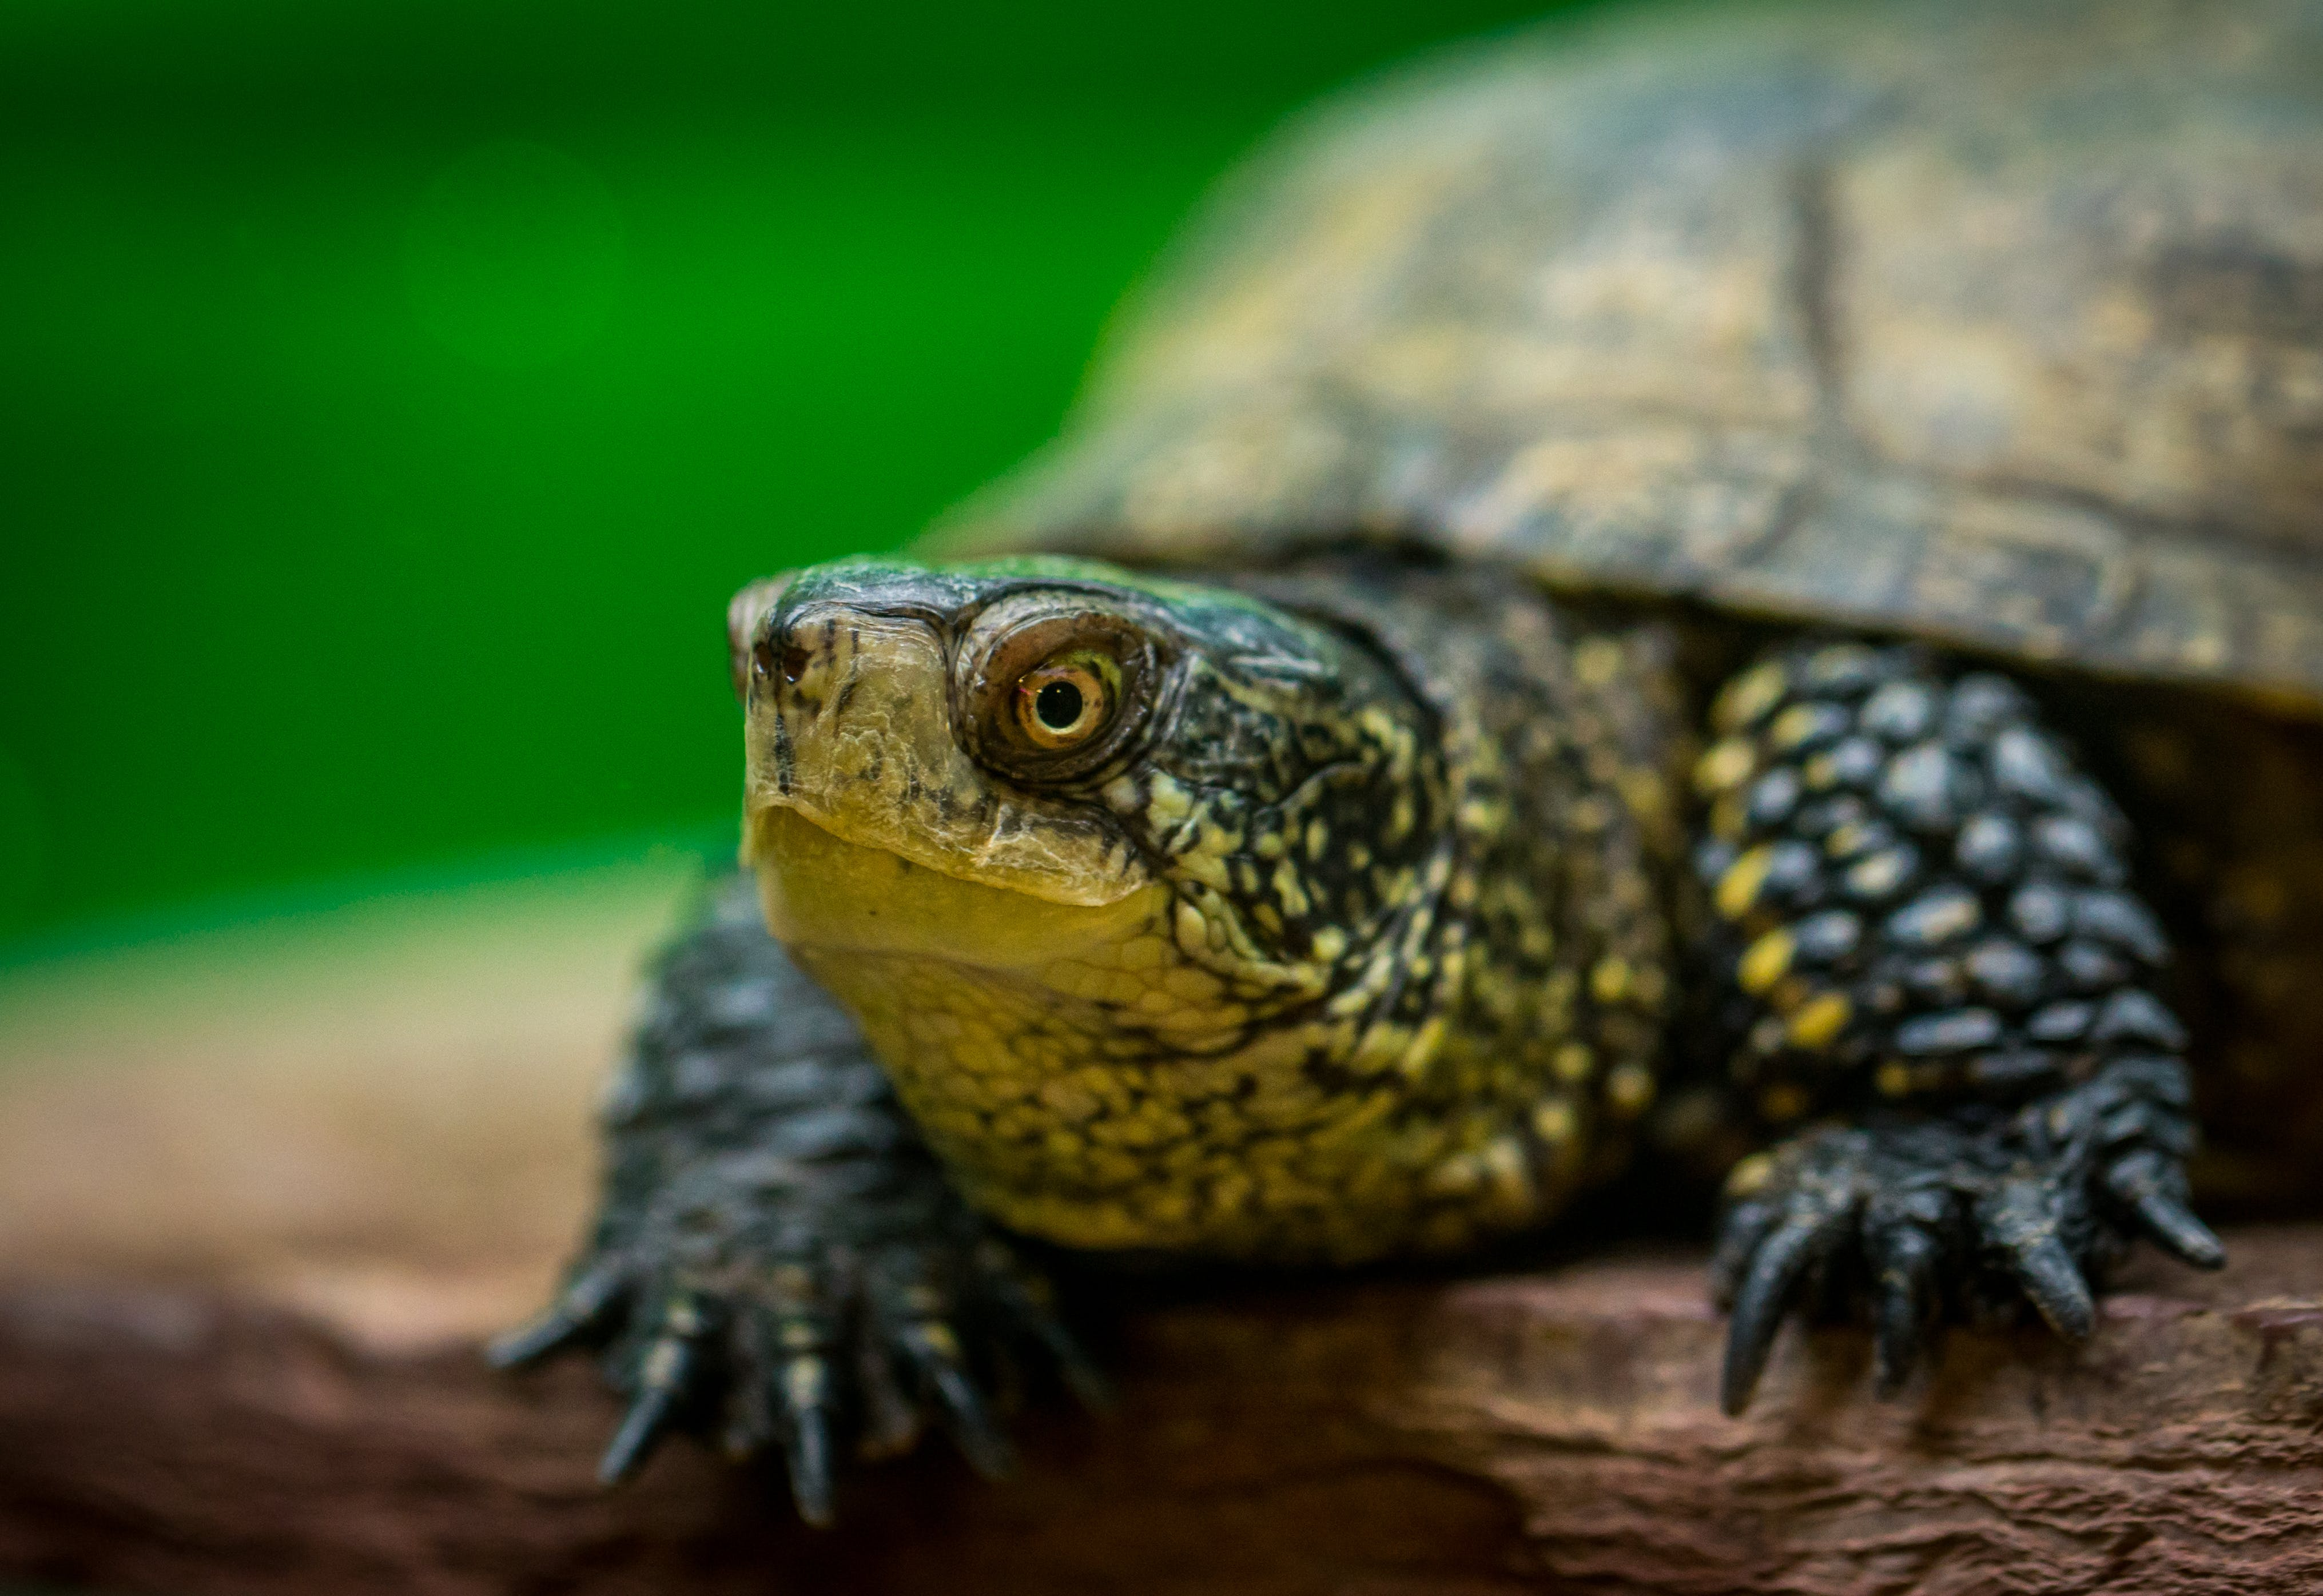 Free stock photo of animal, reptile, turtle